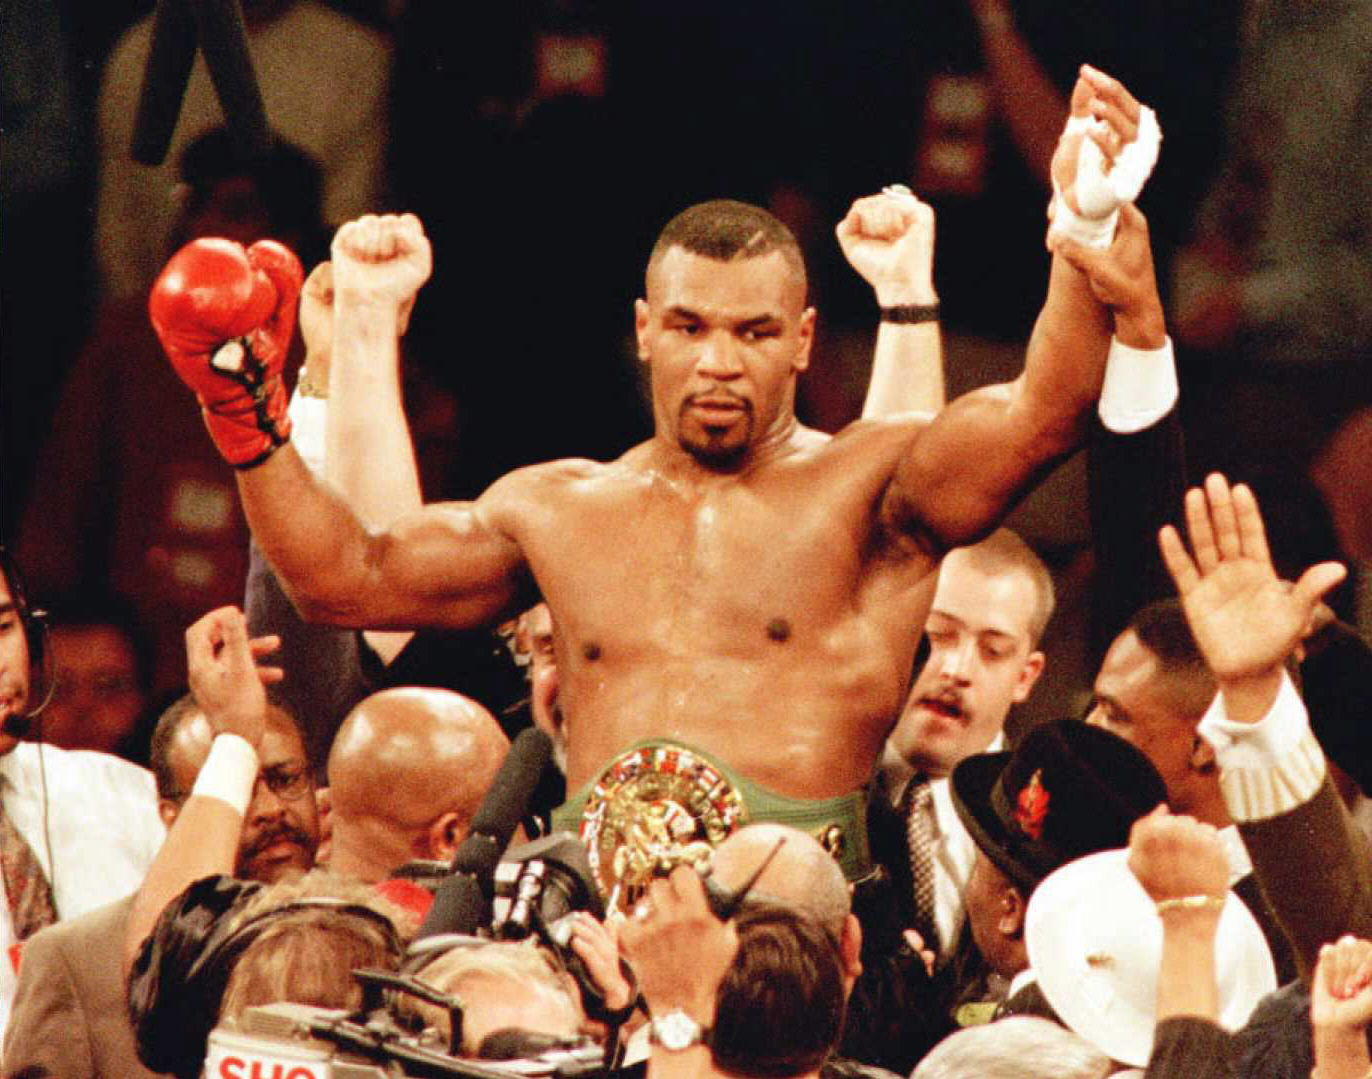 Mike Tyson is lifted into the air wearing the championship belt after defeating WBC heavyweight champion Frank Bruno